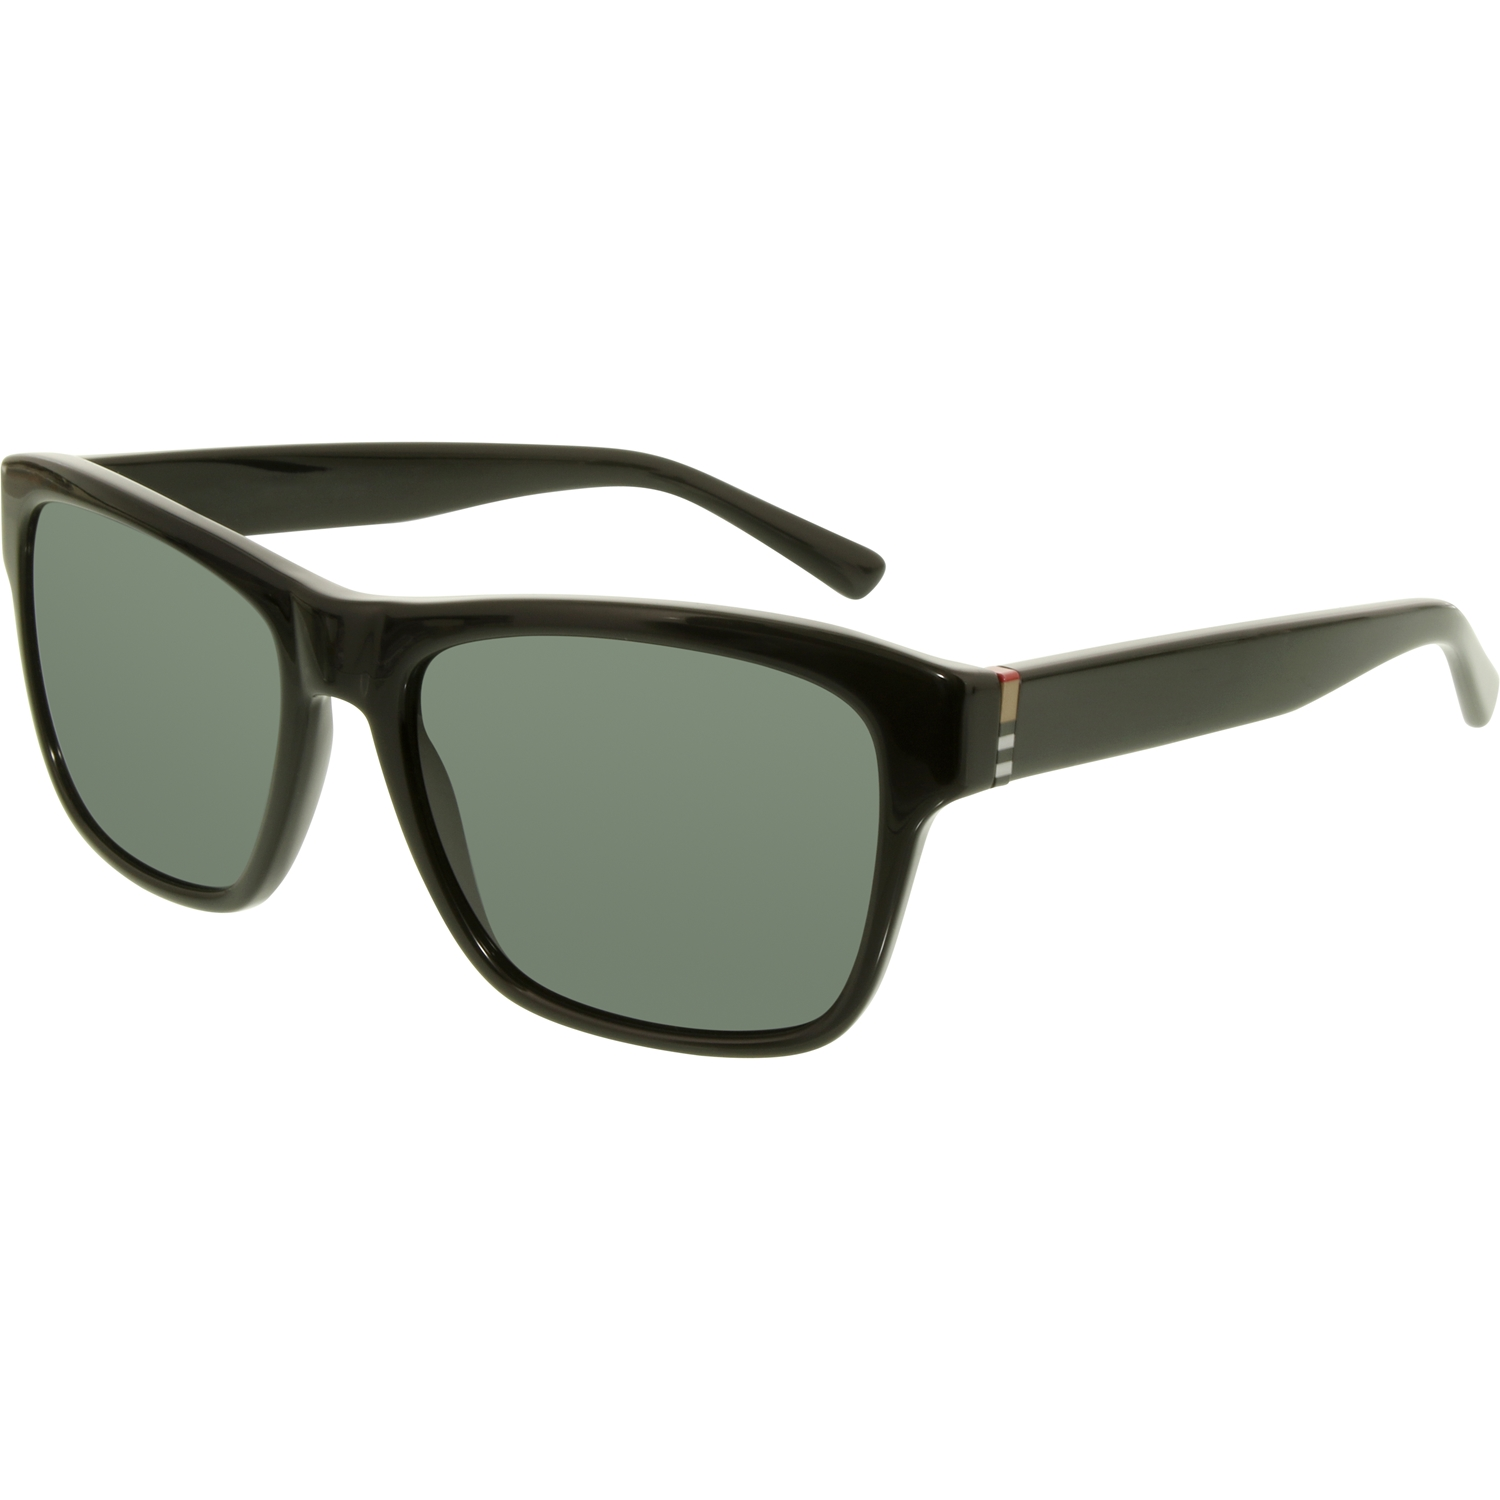 Burberry - Women s BE4194-300187-58 Black Rectangle Sunglasses - Walmart.com 5b29227af2e44